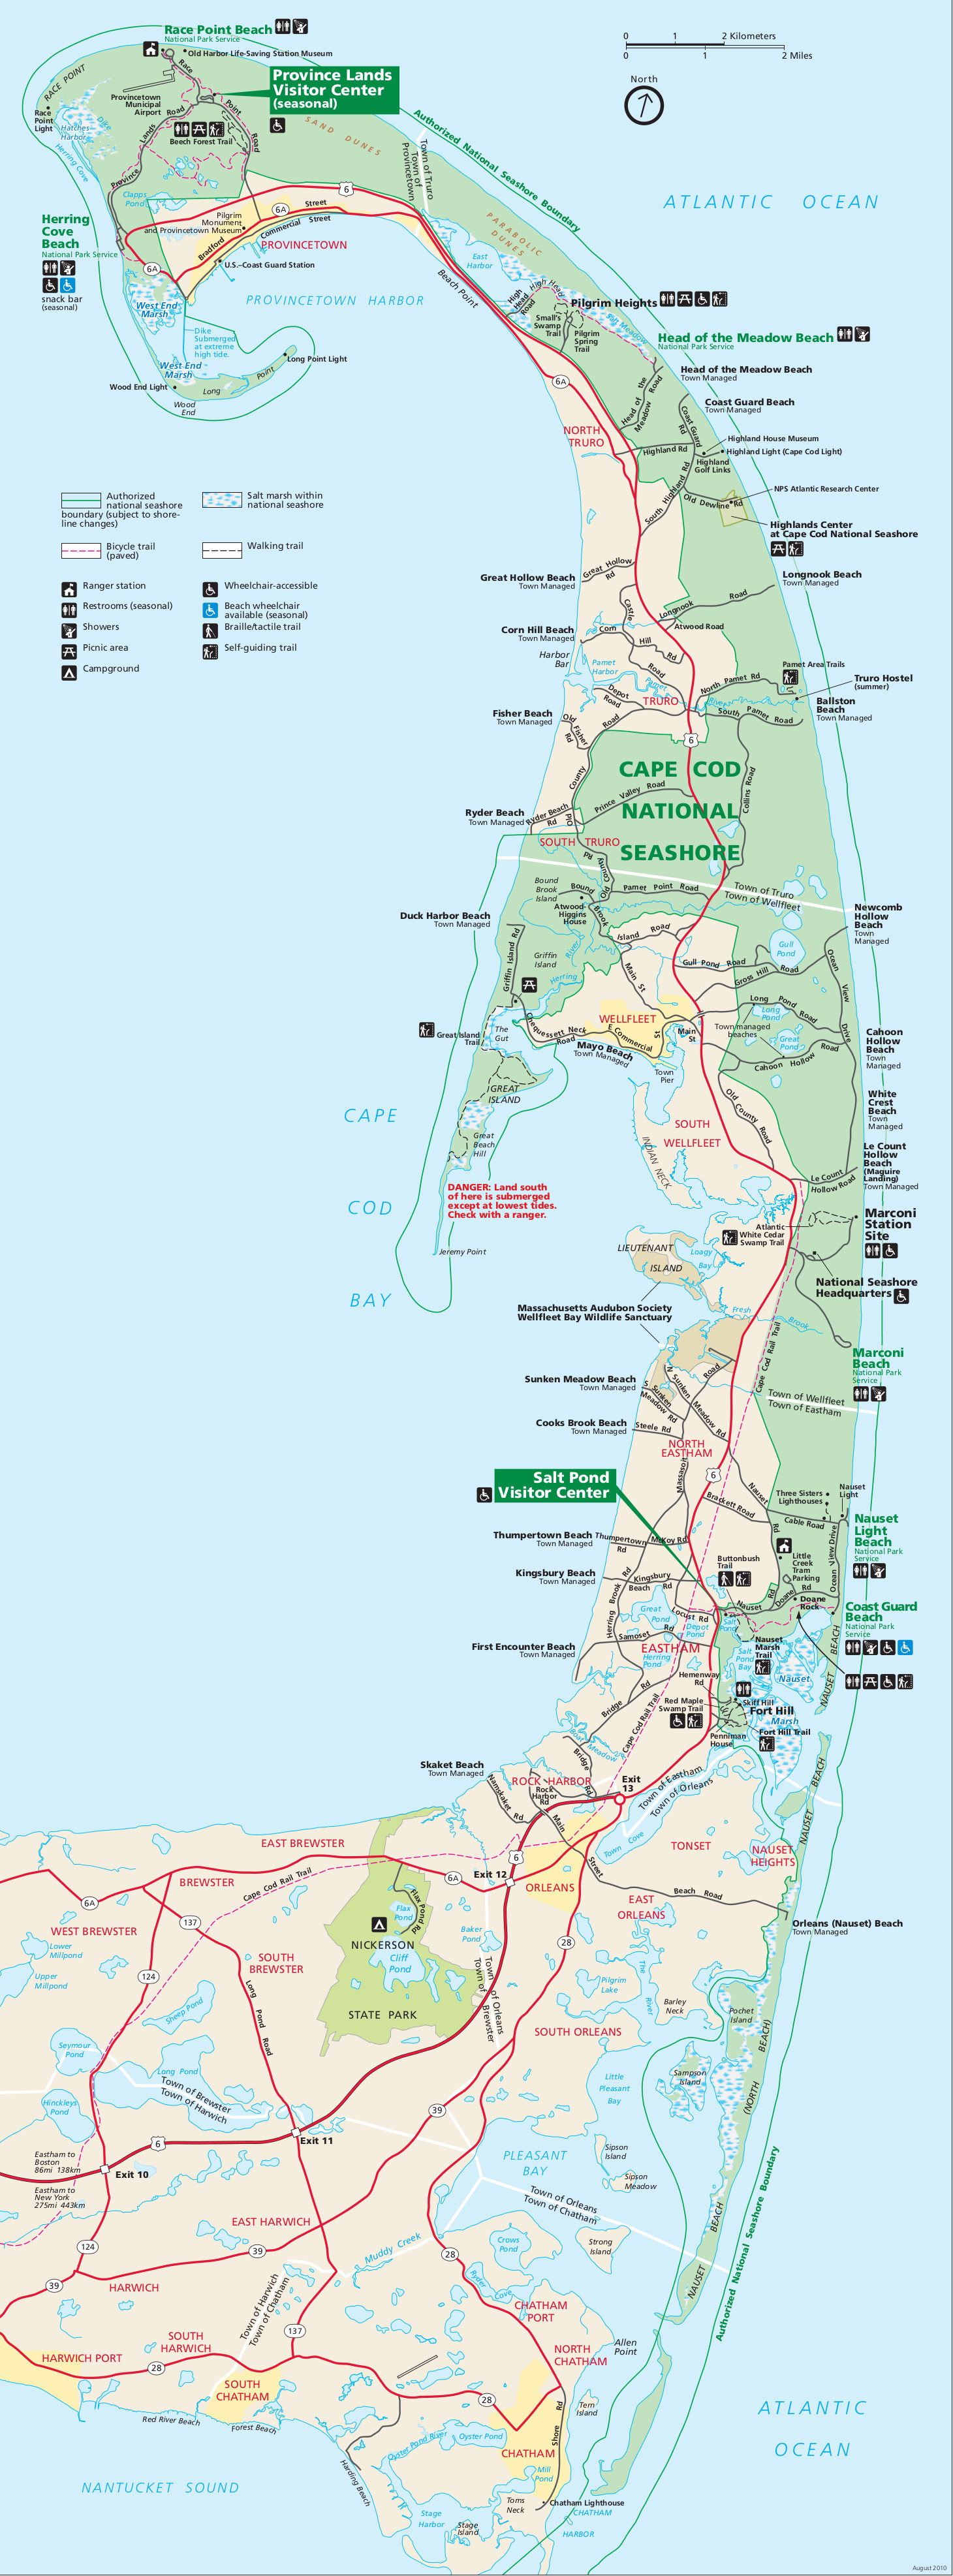 Cape Cod Maps | NPMaps.com - just free maps, period. Cape Code Map on area code map, cape disappointment state park campground map, geo code map, cape map map, cape cod map, cape map of the mills, canada code map, port code map, cape york peninsula map, cape hope map, cape ranges on map, cape in the us, cape on a map, cape hatteras, cape codero map,